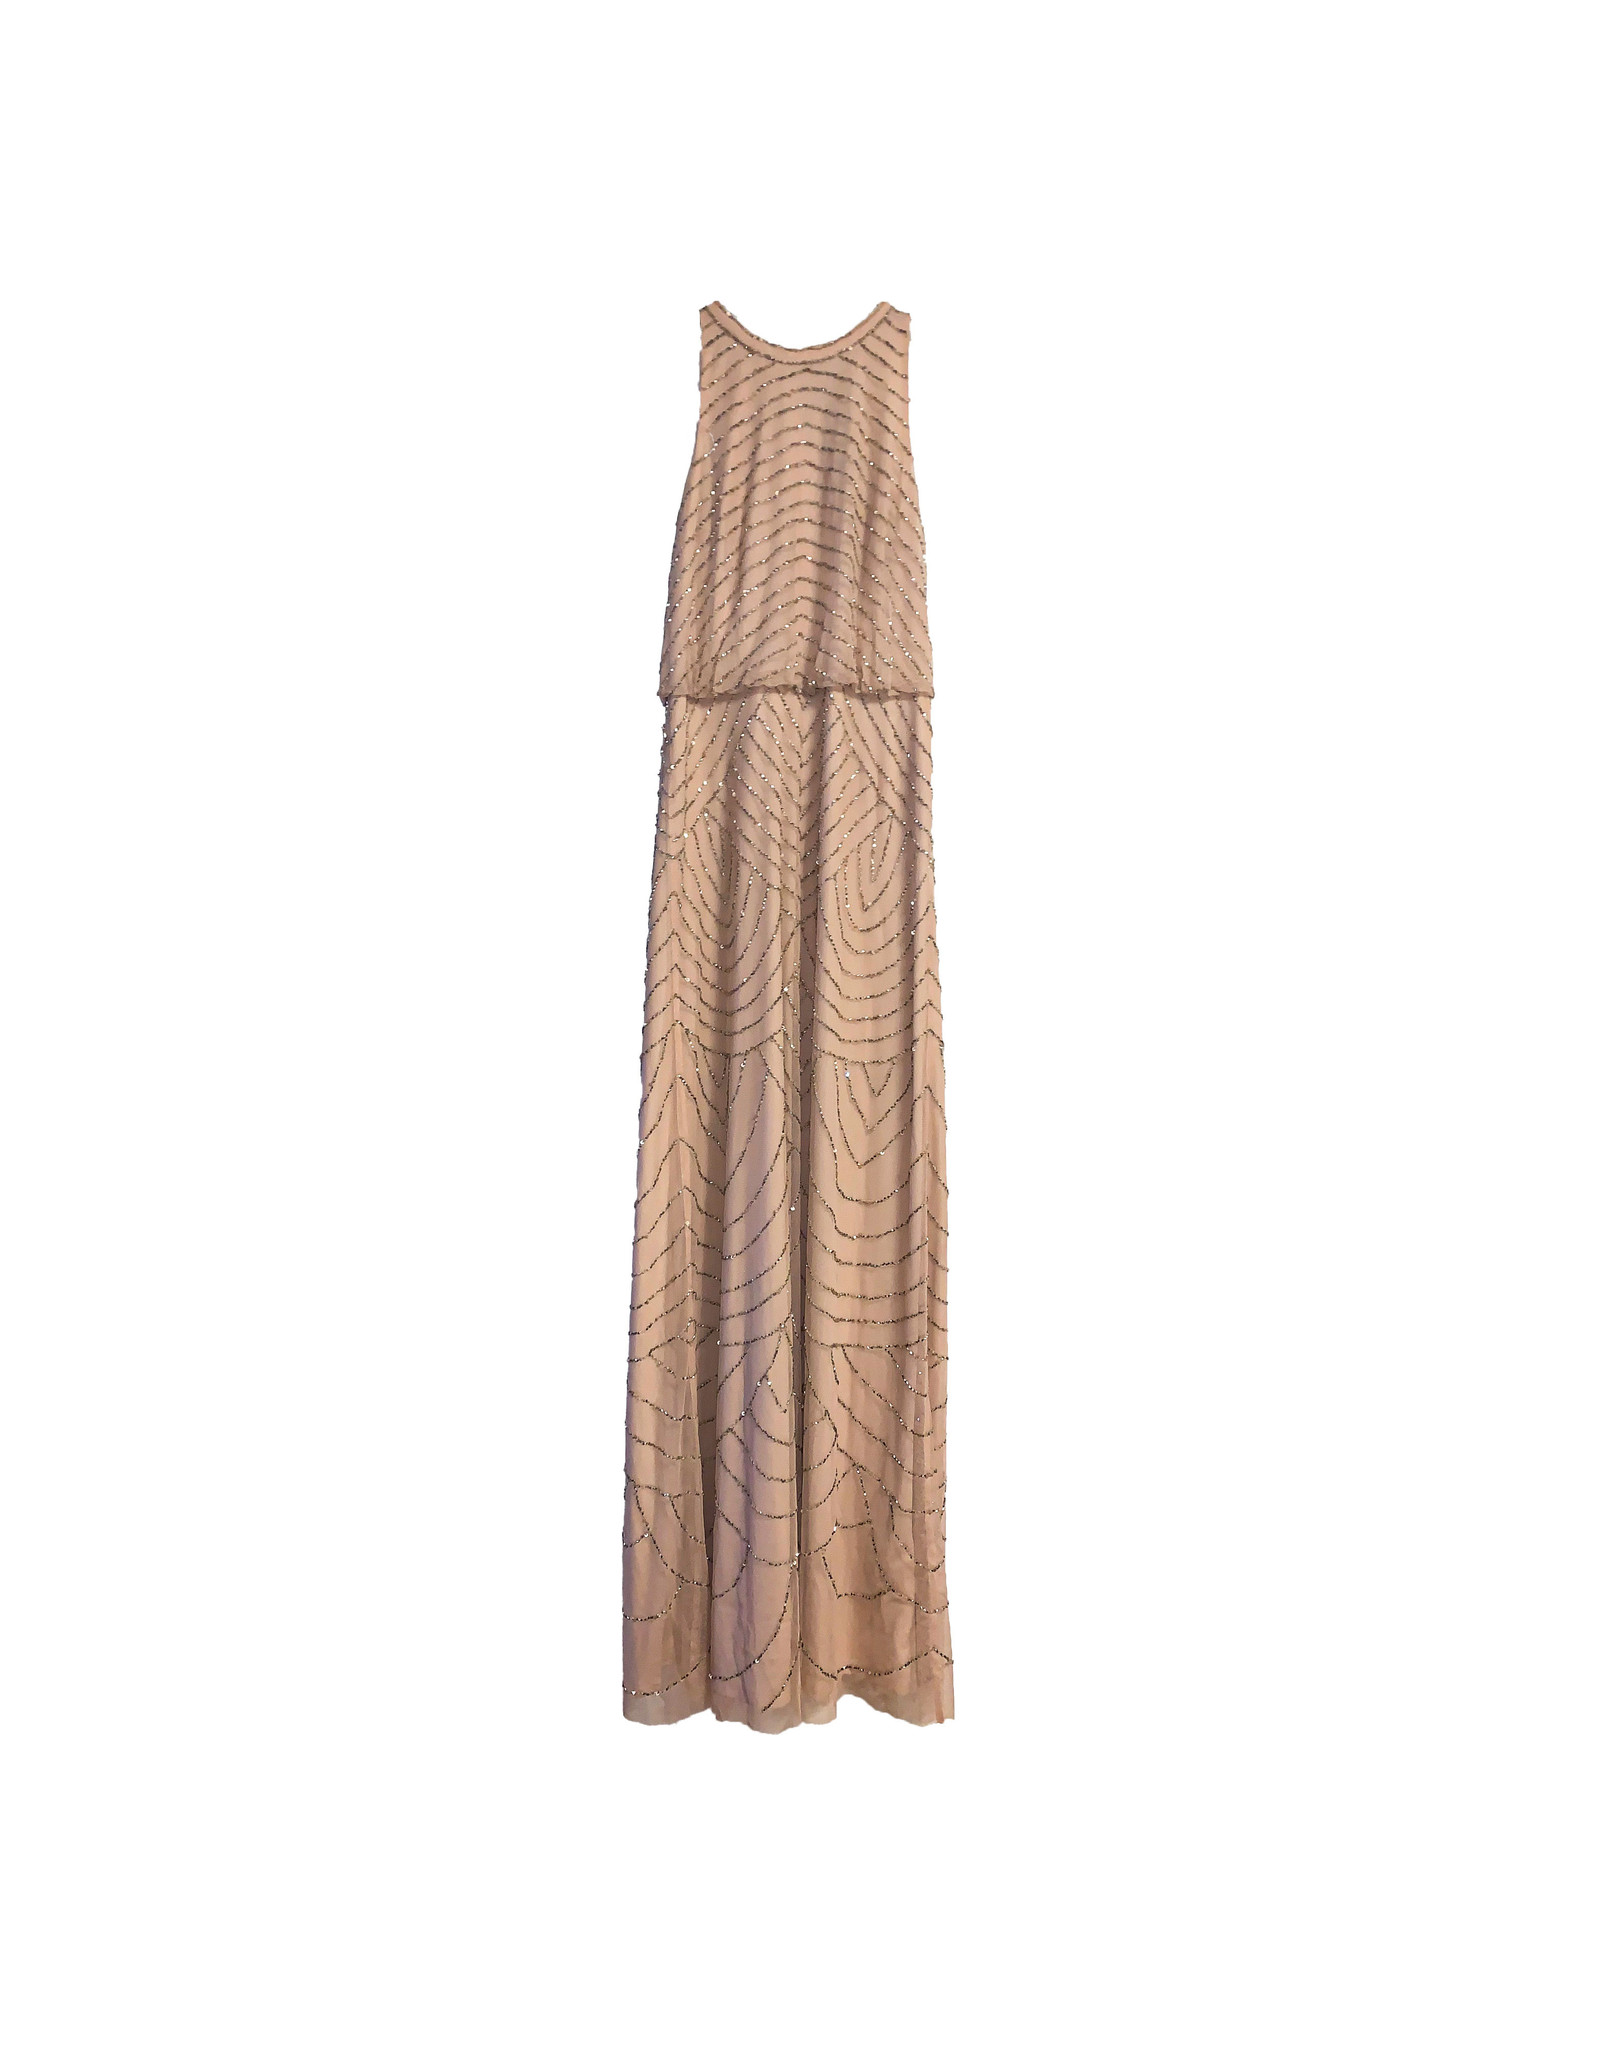 ADRIANNA PAPELL Adrianna Papell Beaded Gown